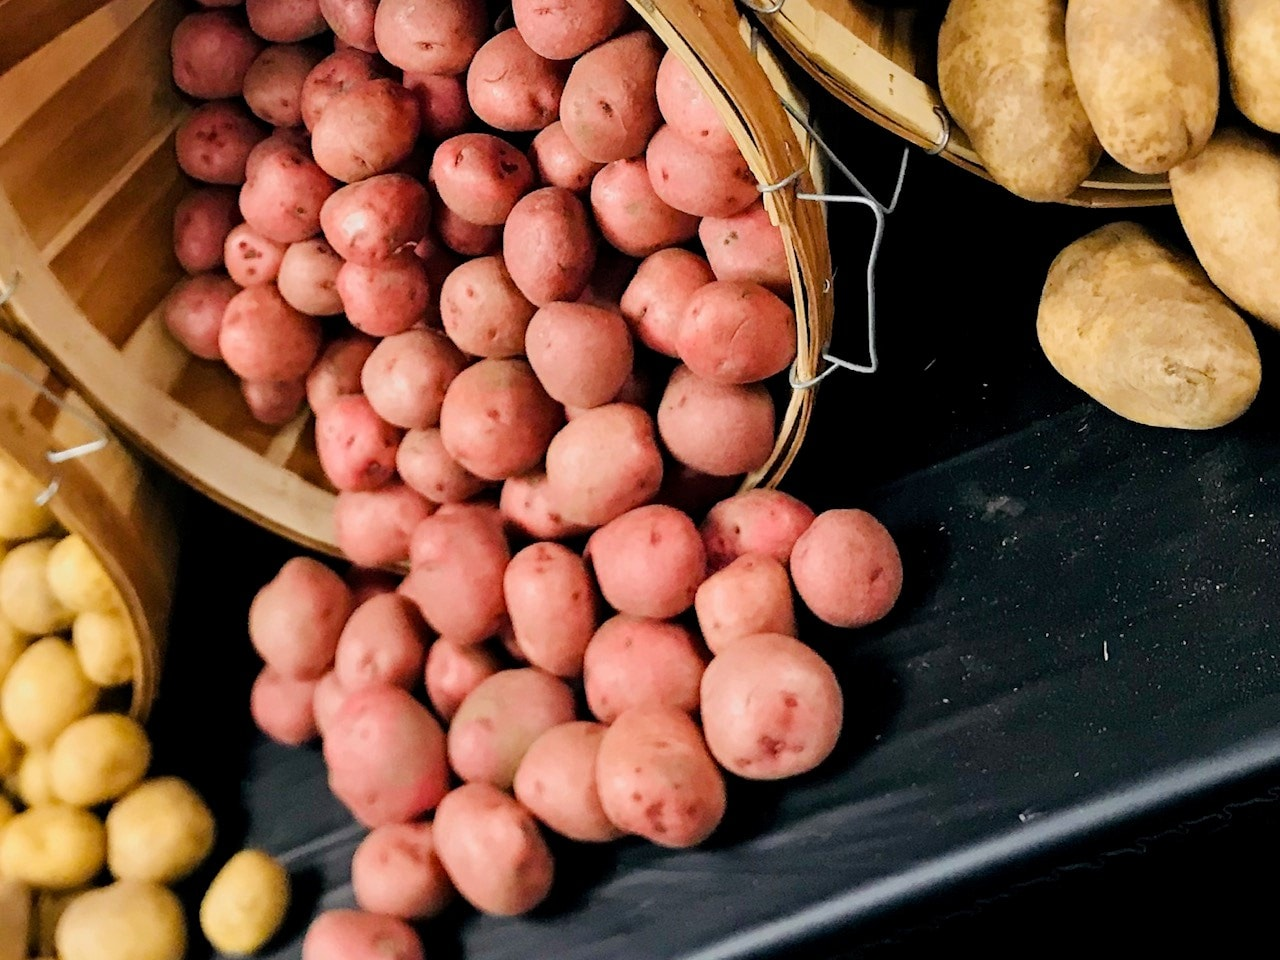 Assortment of potatoes in a barrel